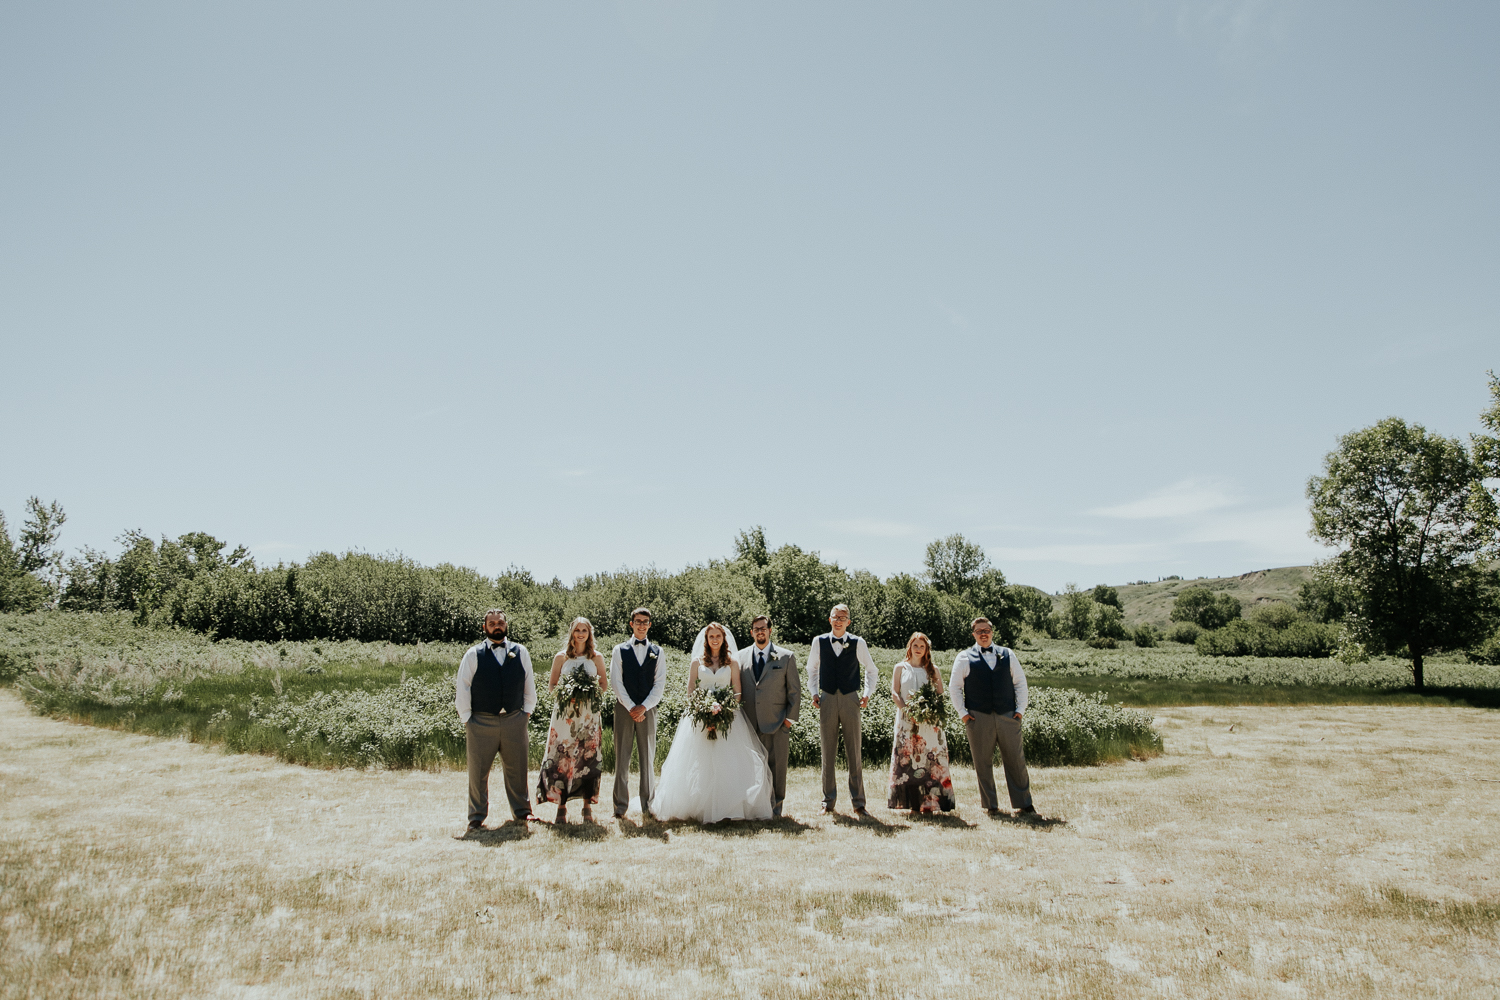 lethbridge-wedding-photographer-love-and-be-loved-photography-dan-tynnea-picture-image-photo-73.jpg